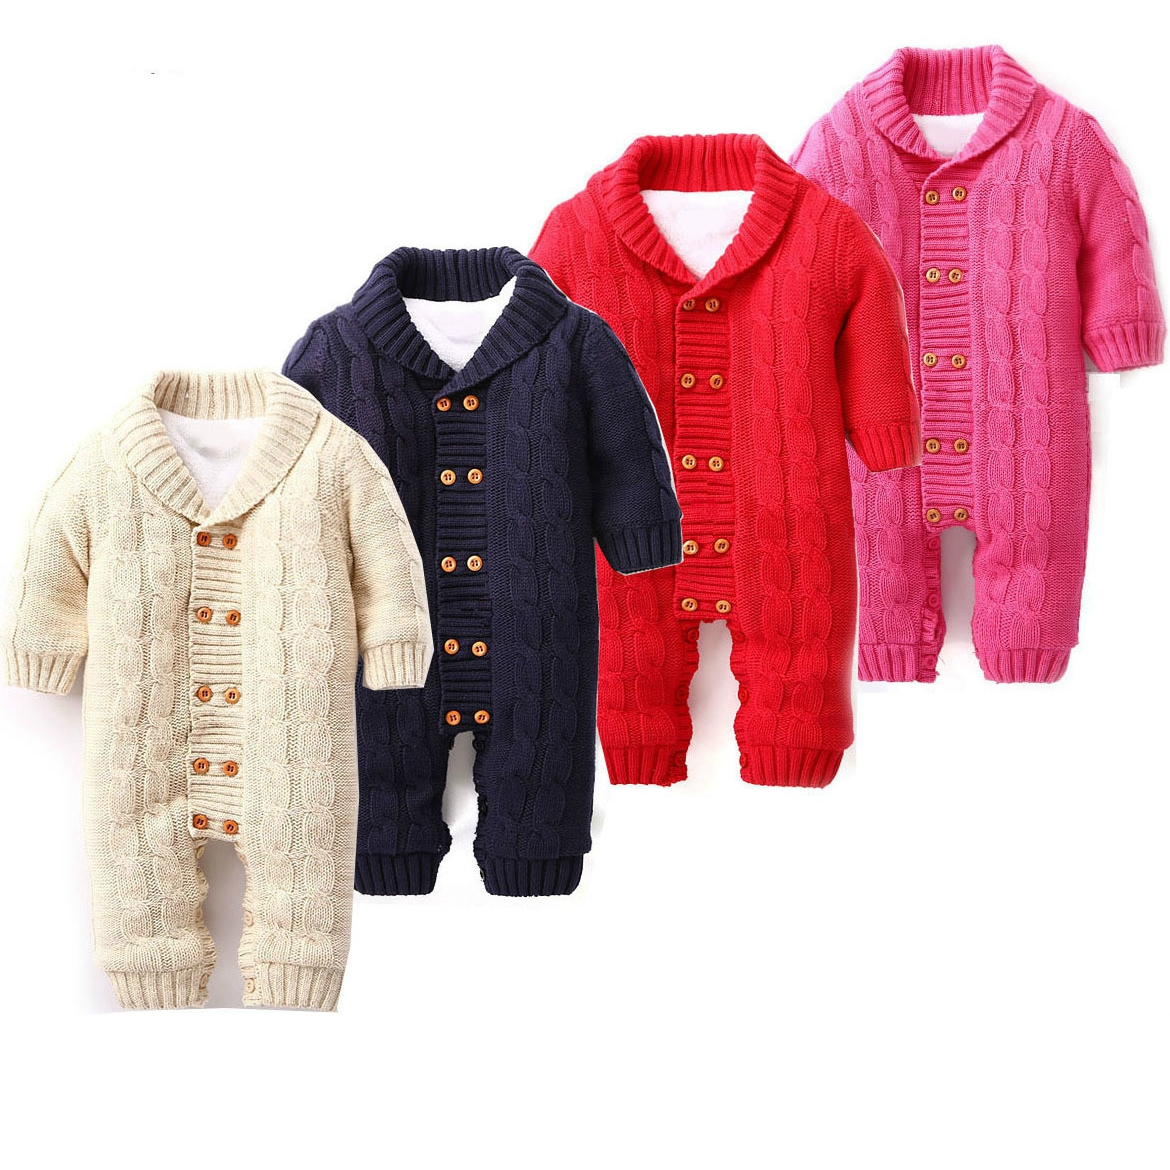 Thick Cotton Warm Infant Baby Rompers Winter Clothes Newborn Baby Boy Girl Knitted Sweater Jumpsuit Hooded Kid Toddler Outerwear 2017 new baby rompers winter thick warm baby girl boy clothing long sleeve hooded jumpsuit kids newborn outwear for 1 3t